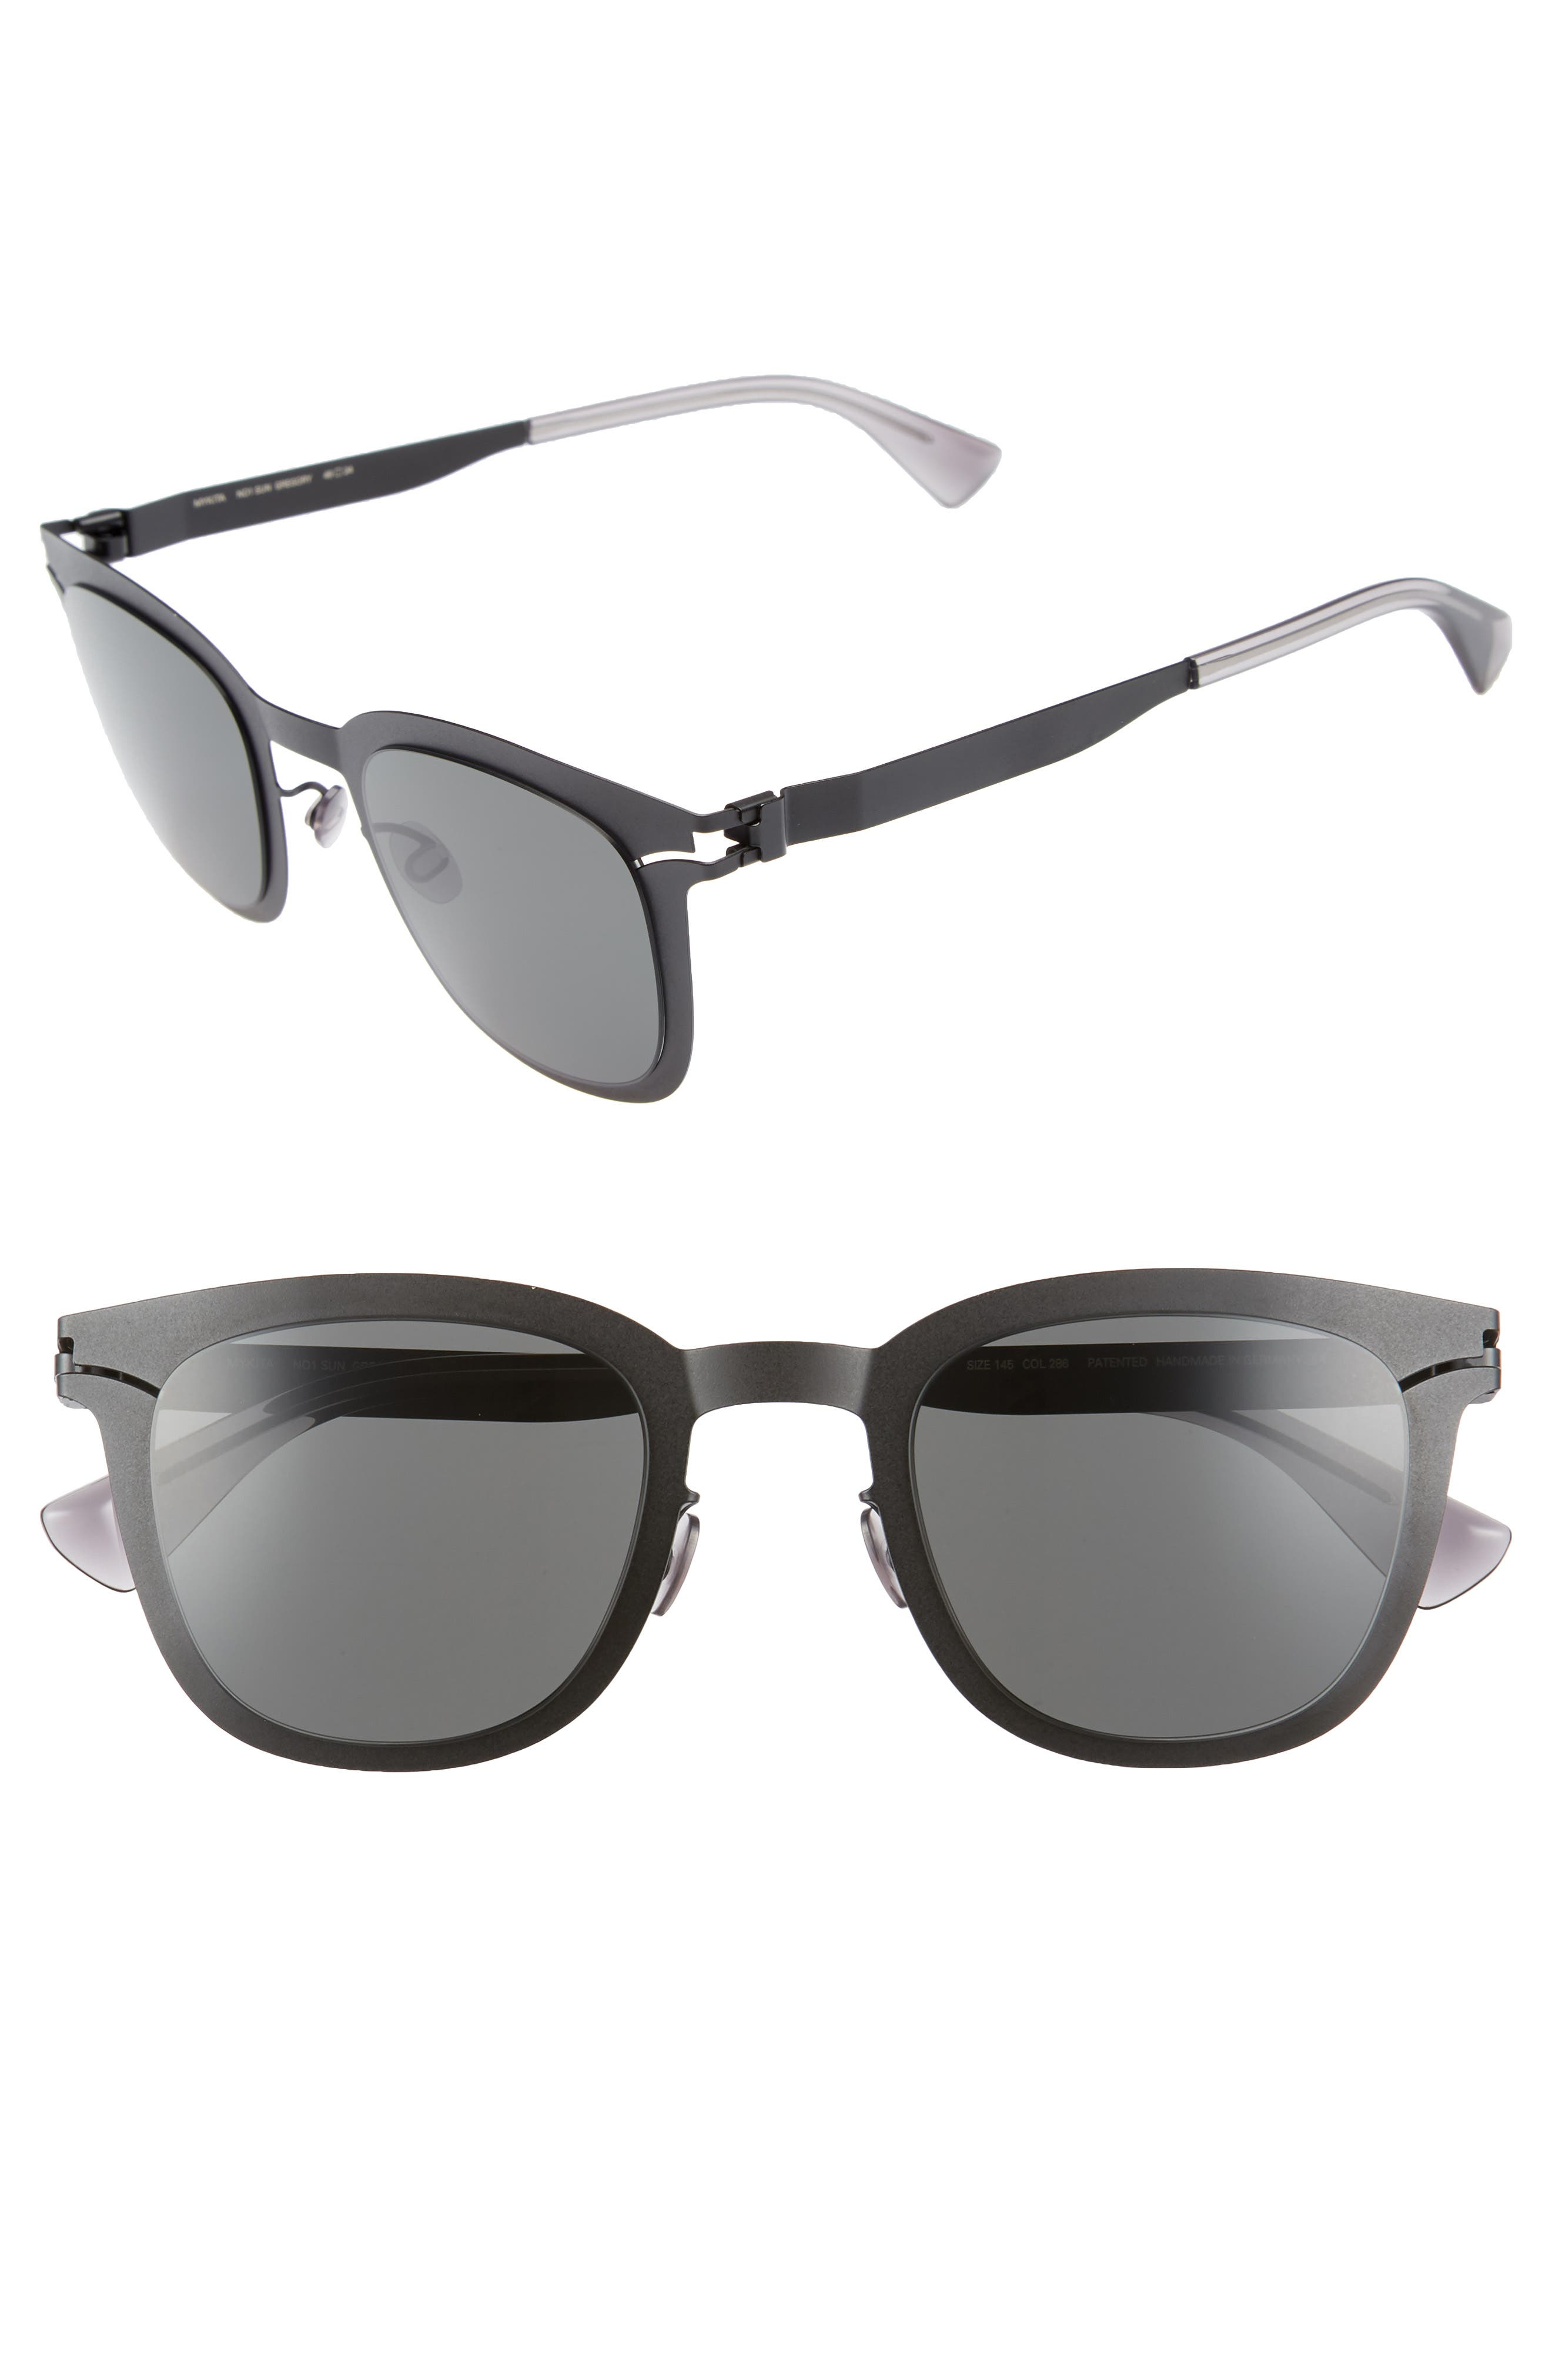 Gregory 49mm Sunglasses,                         Main,                         color, 001